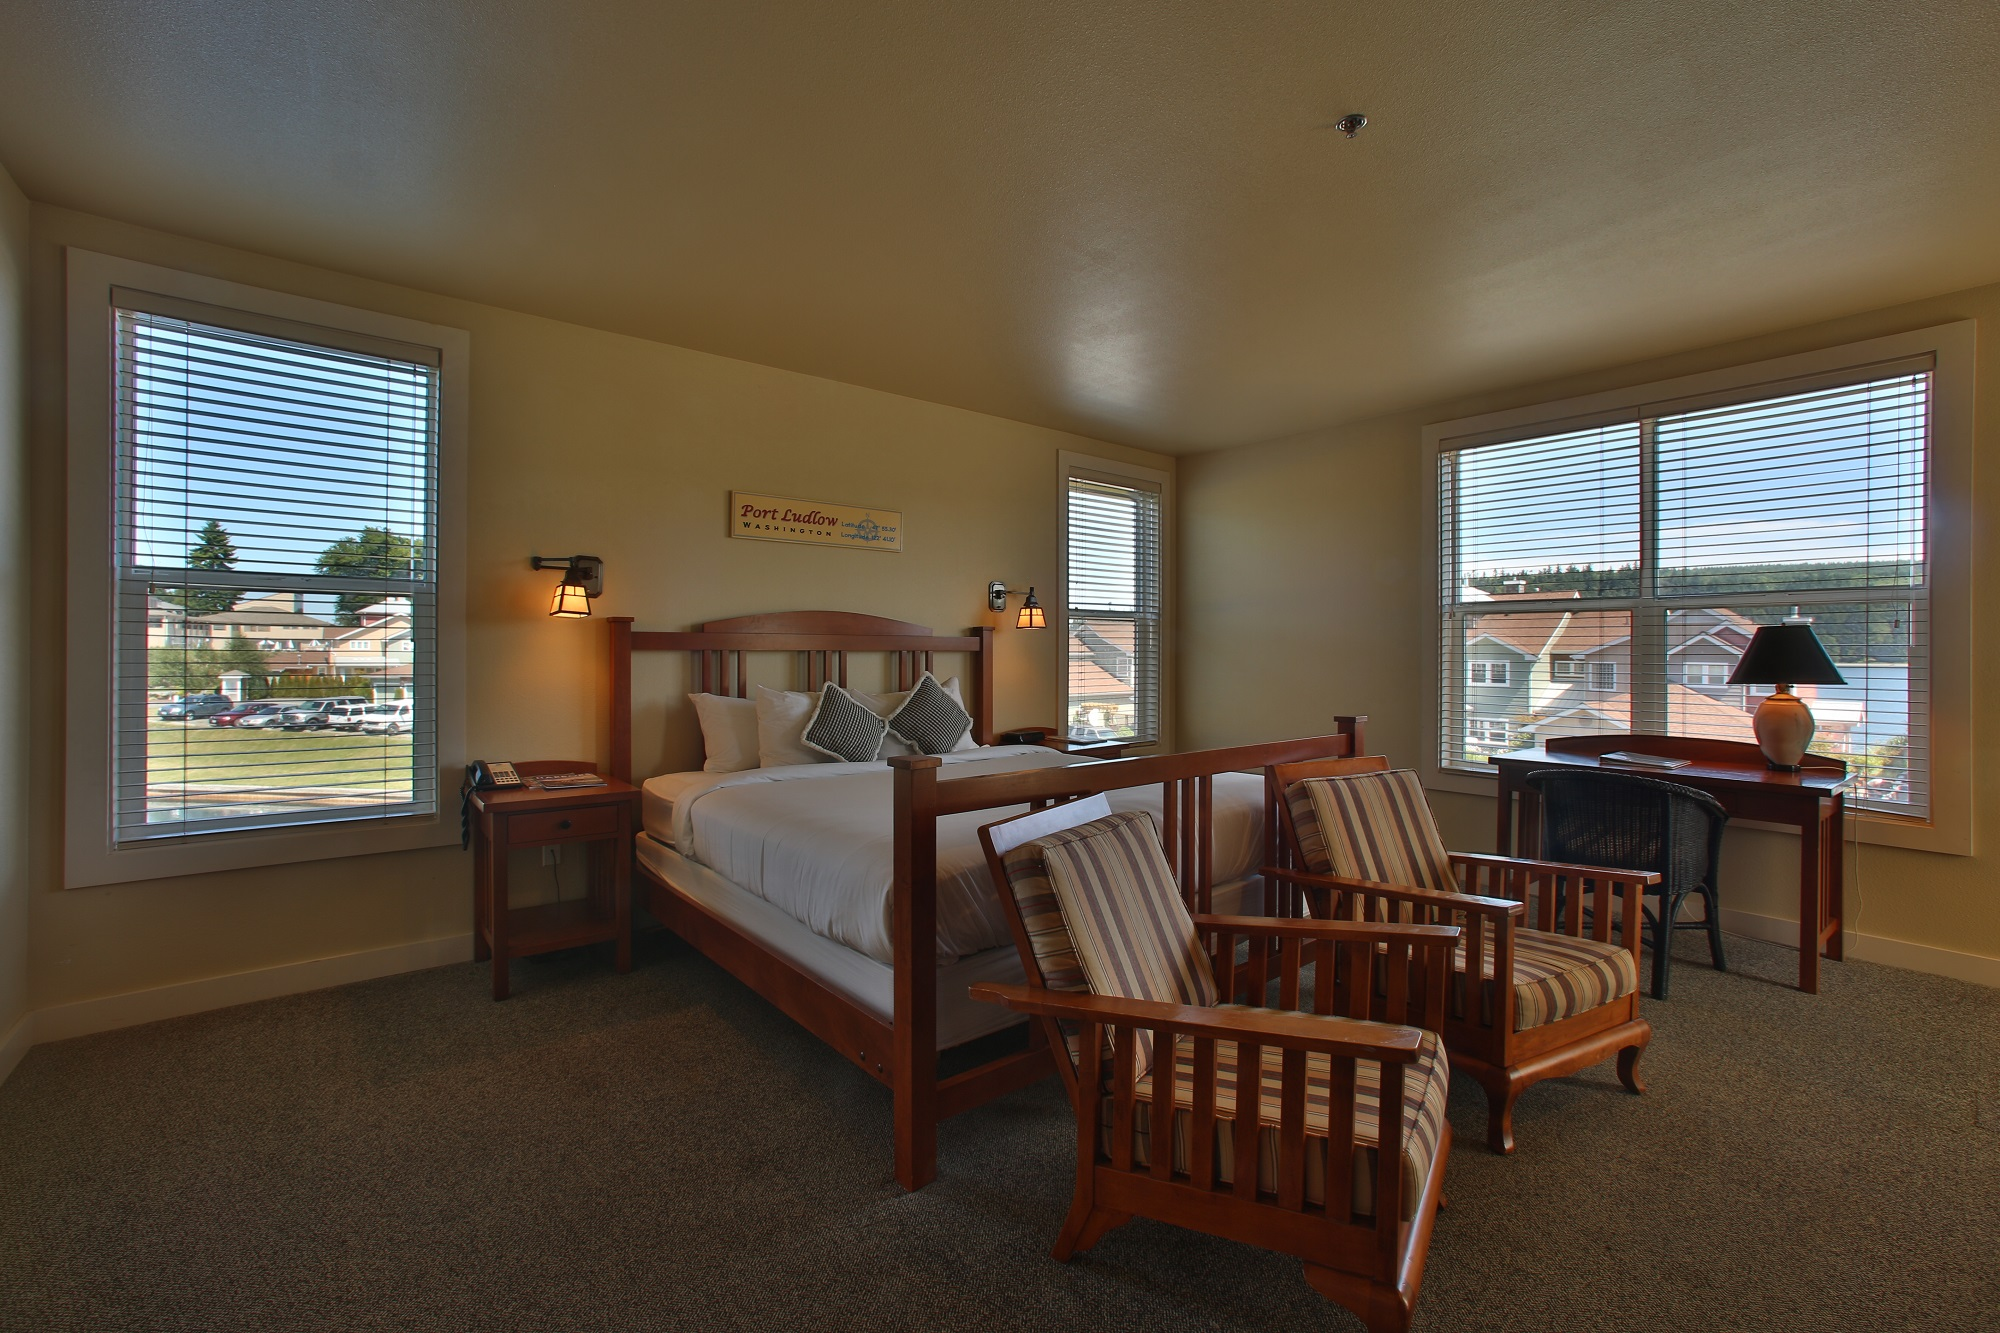 Lodging, Resort, Inn, Guest Room, Olympic Peninsula